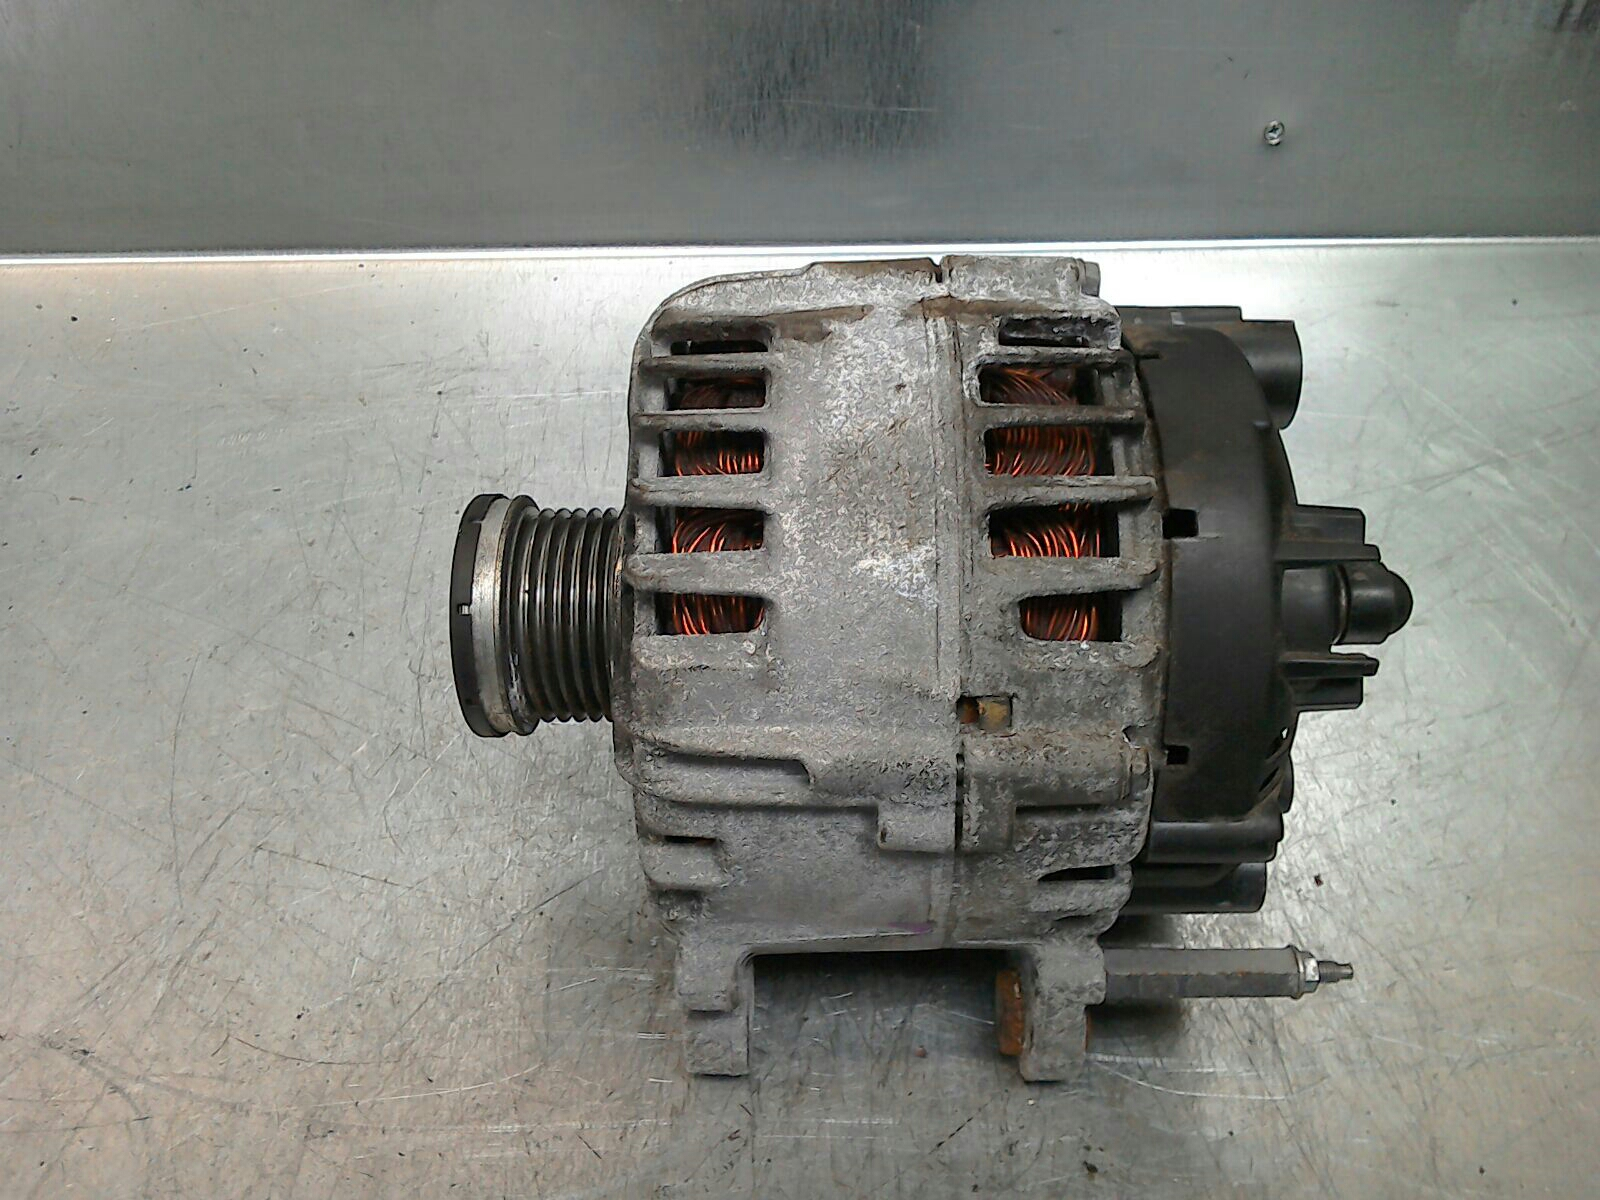 audi a3 2008 to 2013 alternator petrol manual for sale from scb rh scbvehicledismantlers co uk 2014 Audi A3 Audi A3 V6